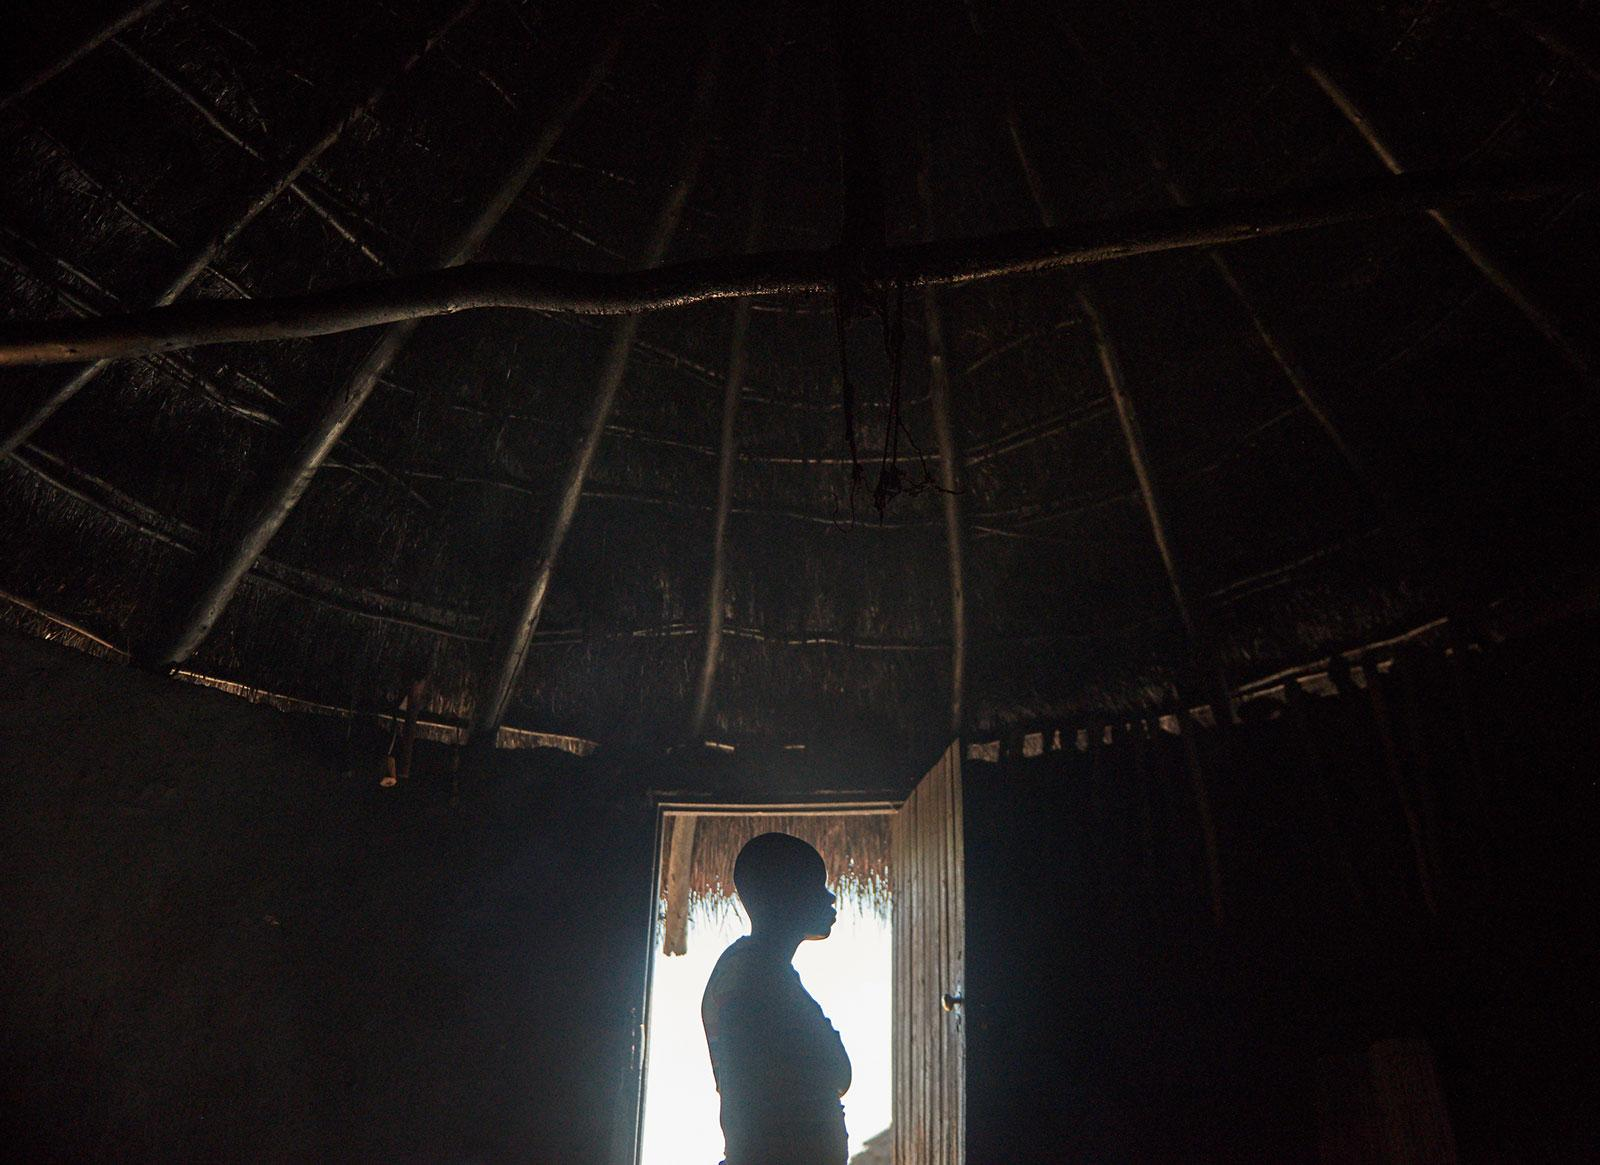 a girl standing in the doorway. the sun is shining outside so only her silhouette is visible